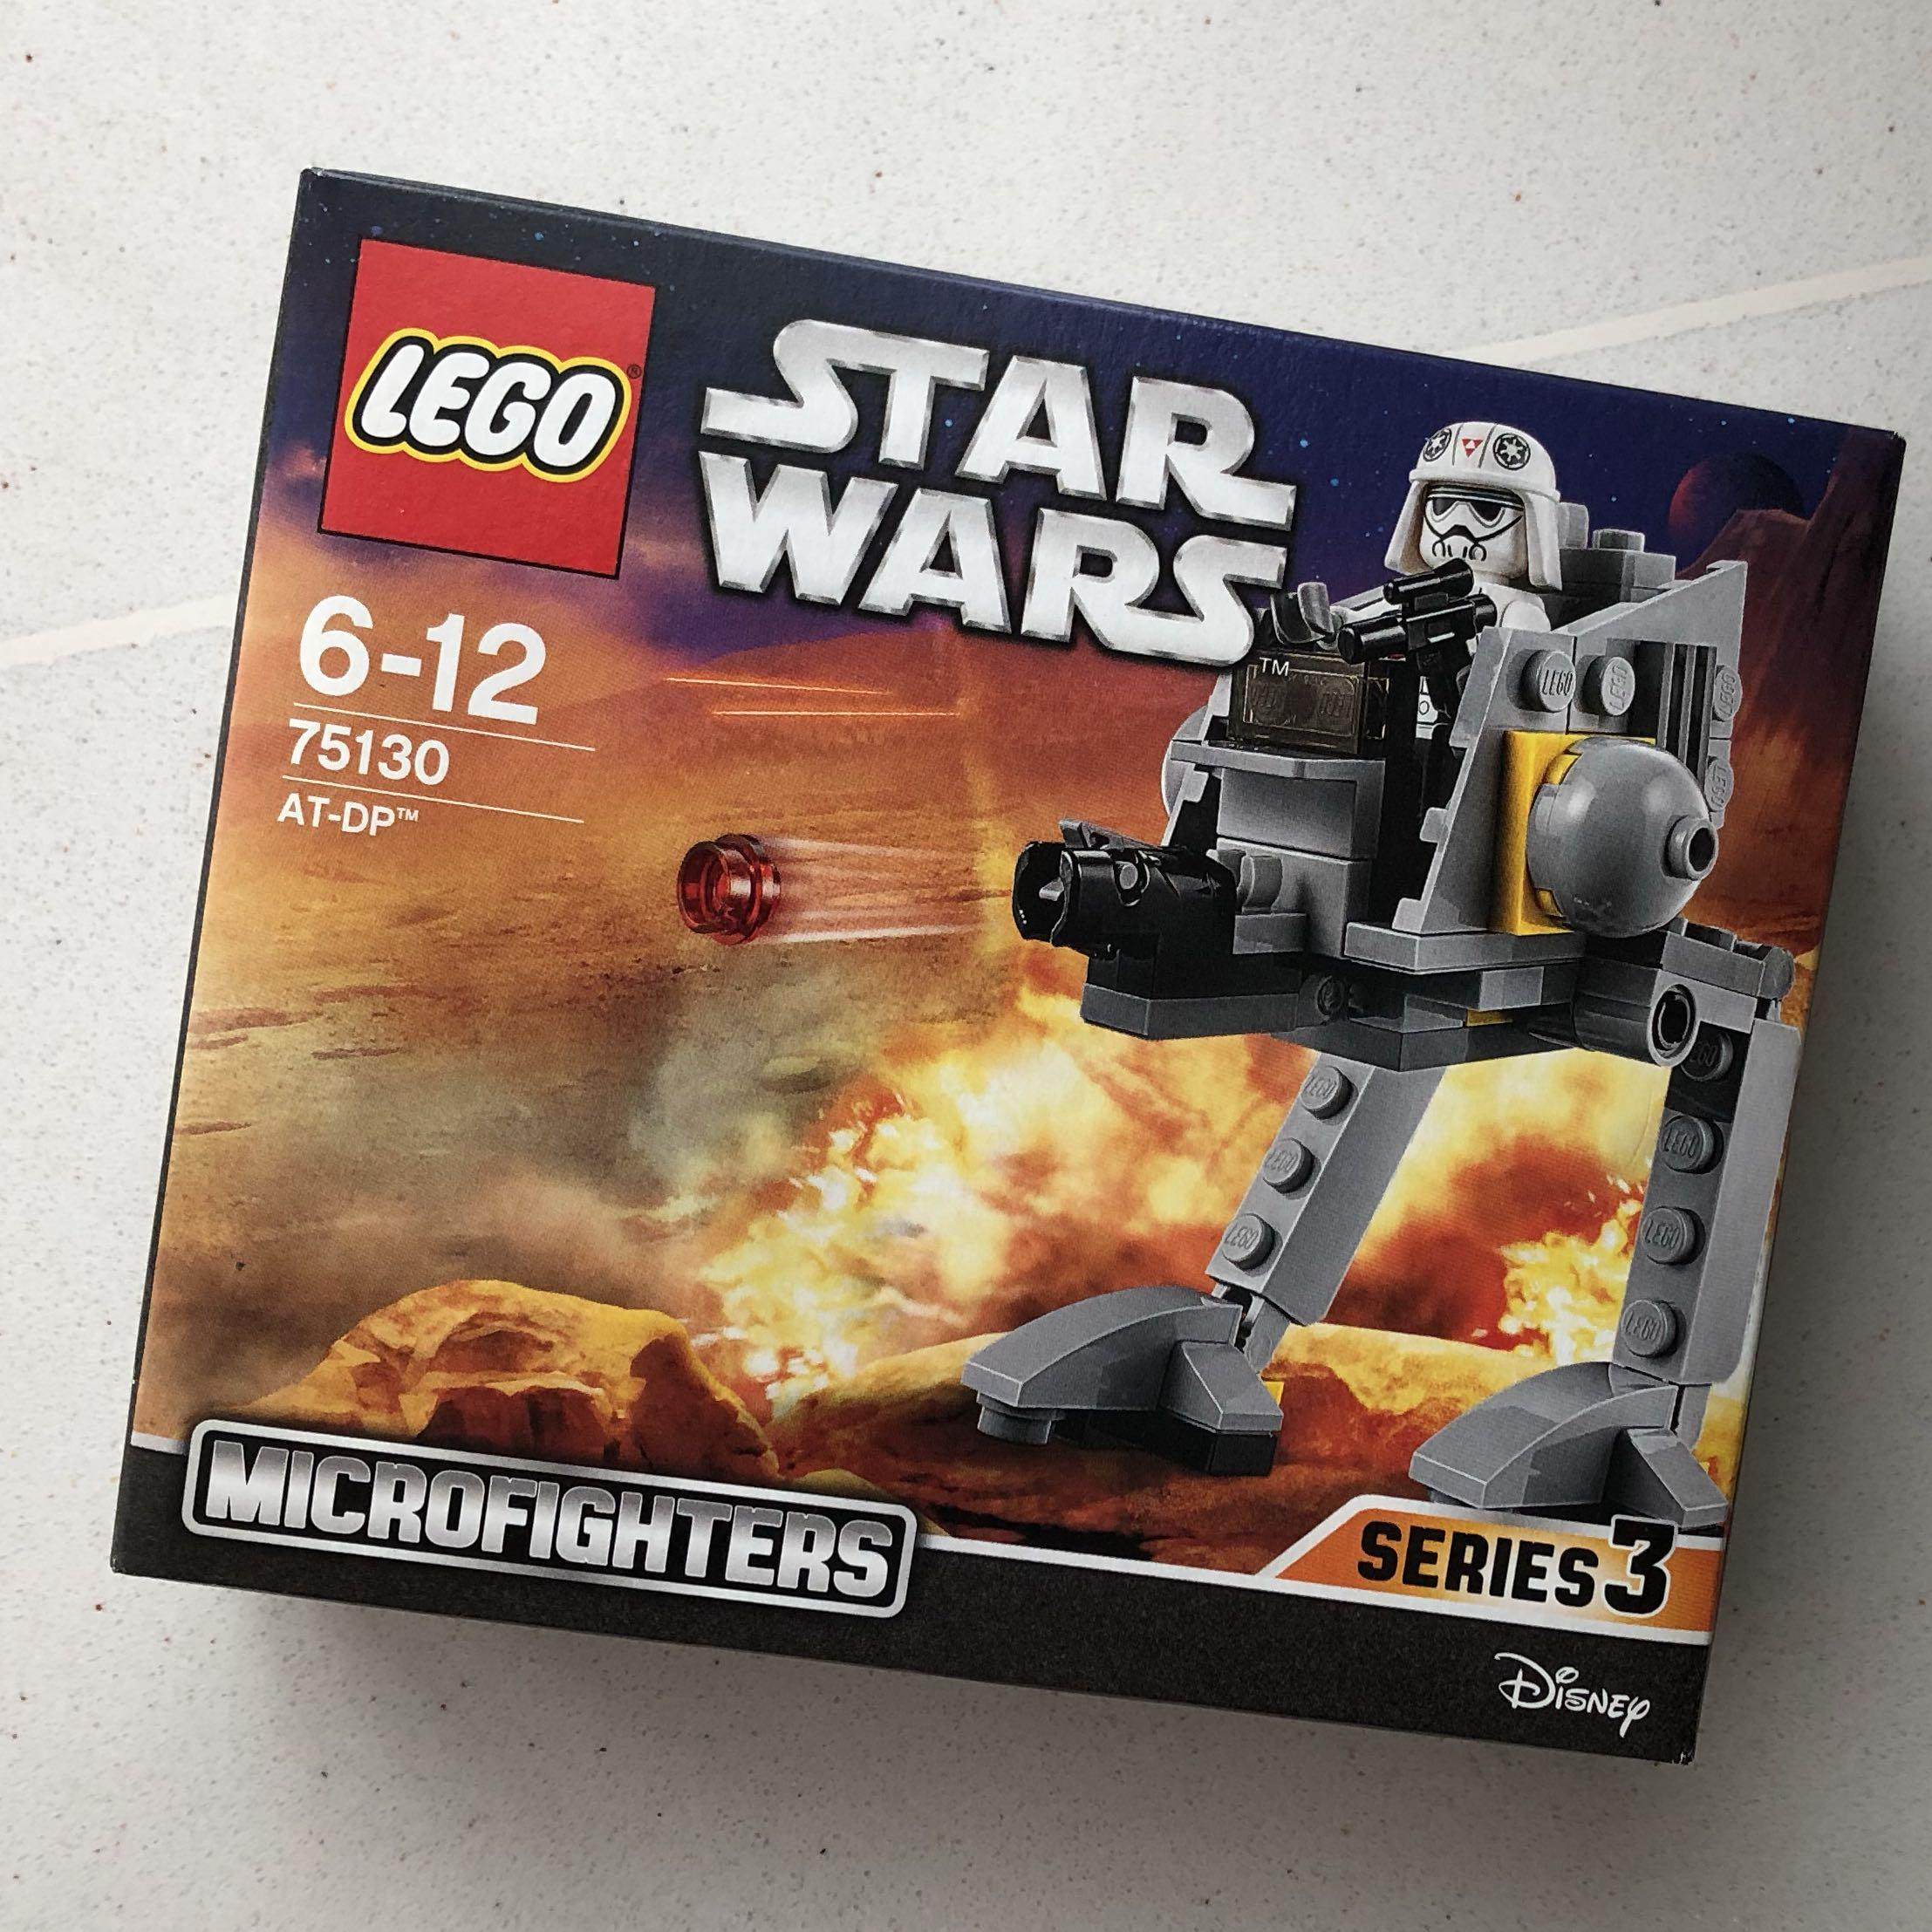 Lego Starwars Microfighters S3- 75130 AT-DP